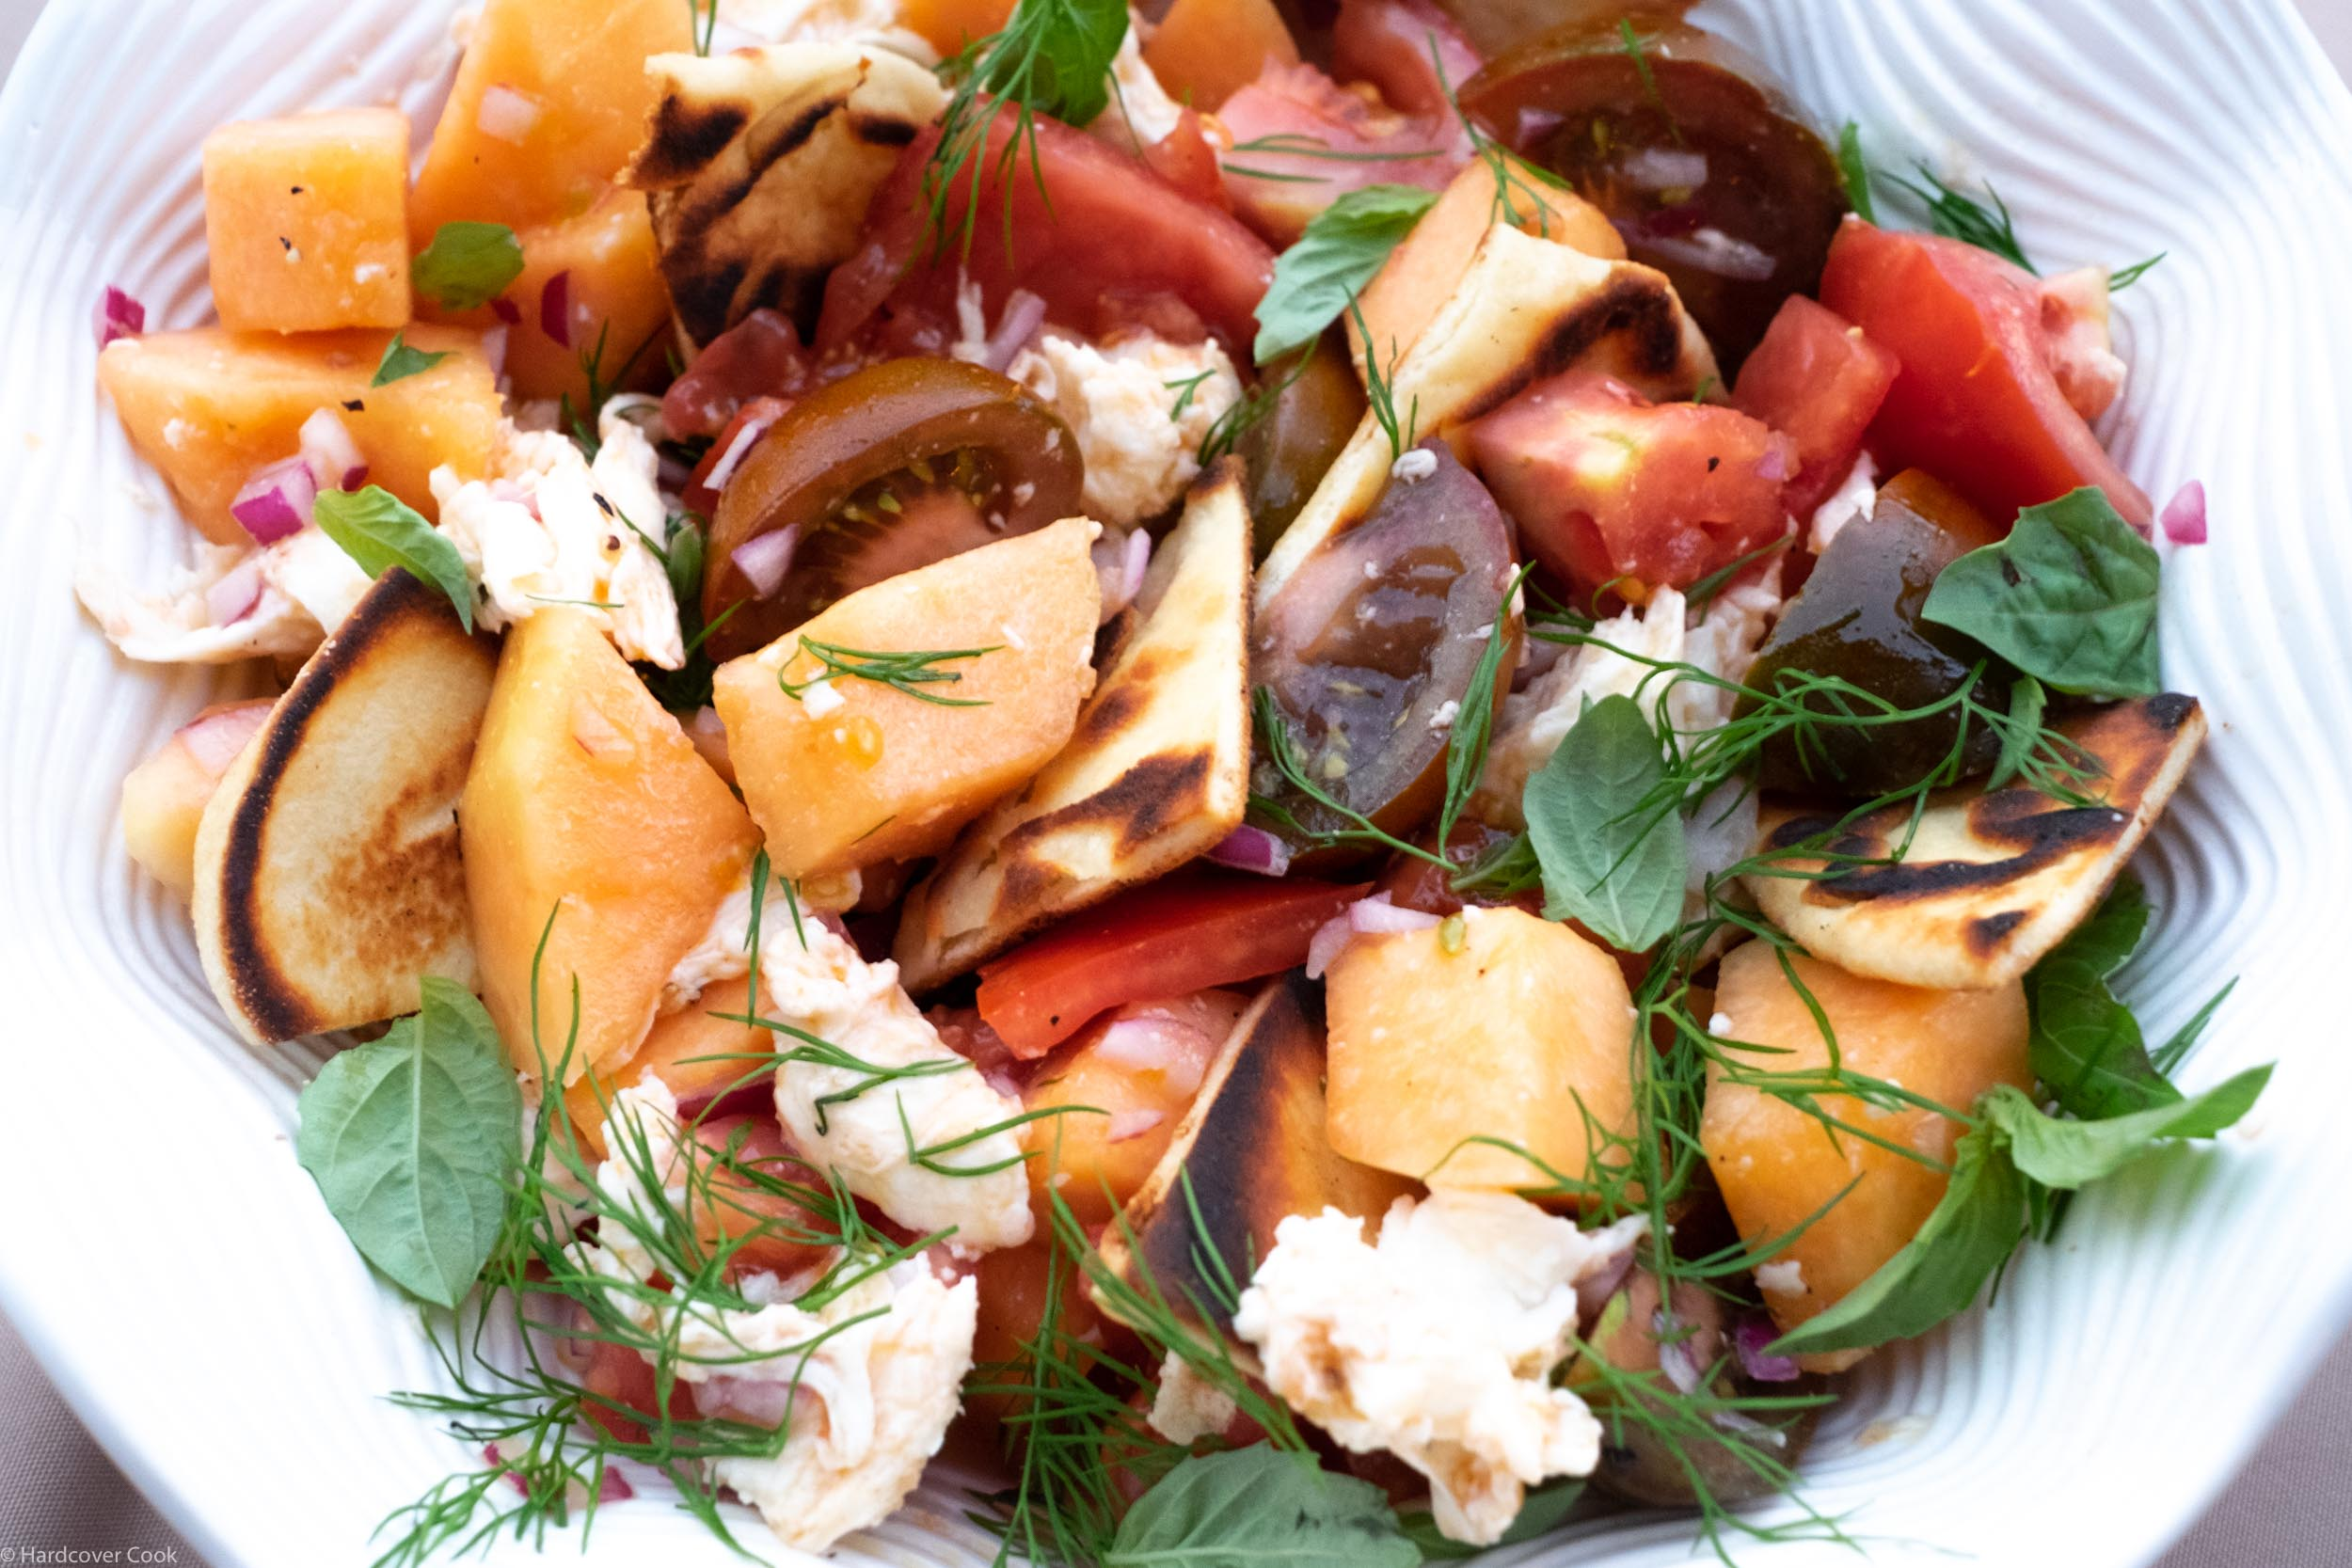 Spicy Melon & Heirloom Tomato Salad with Mozzarella from Just Cook It!